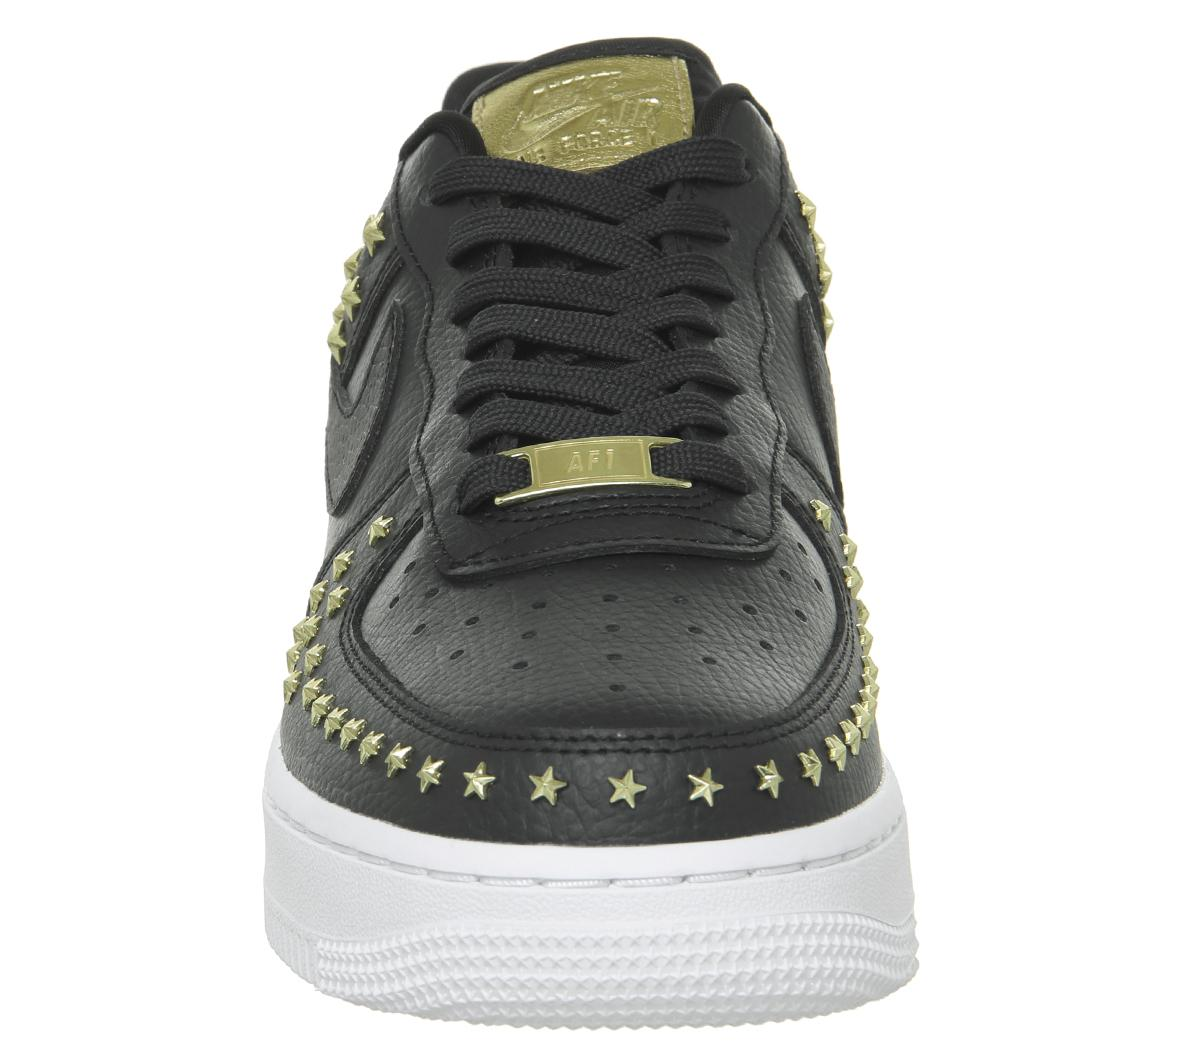 Oil Grey White Star Stud - Hers trainers